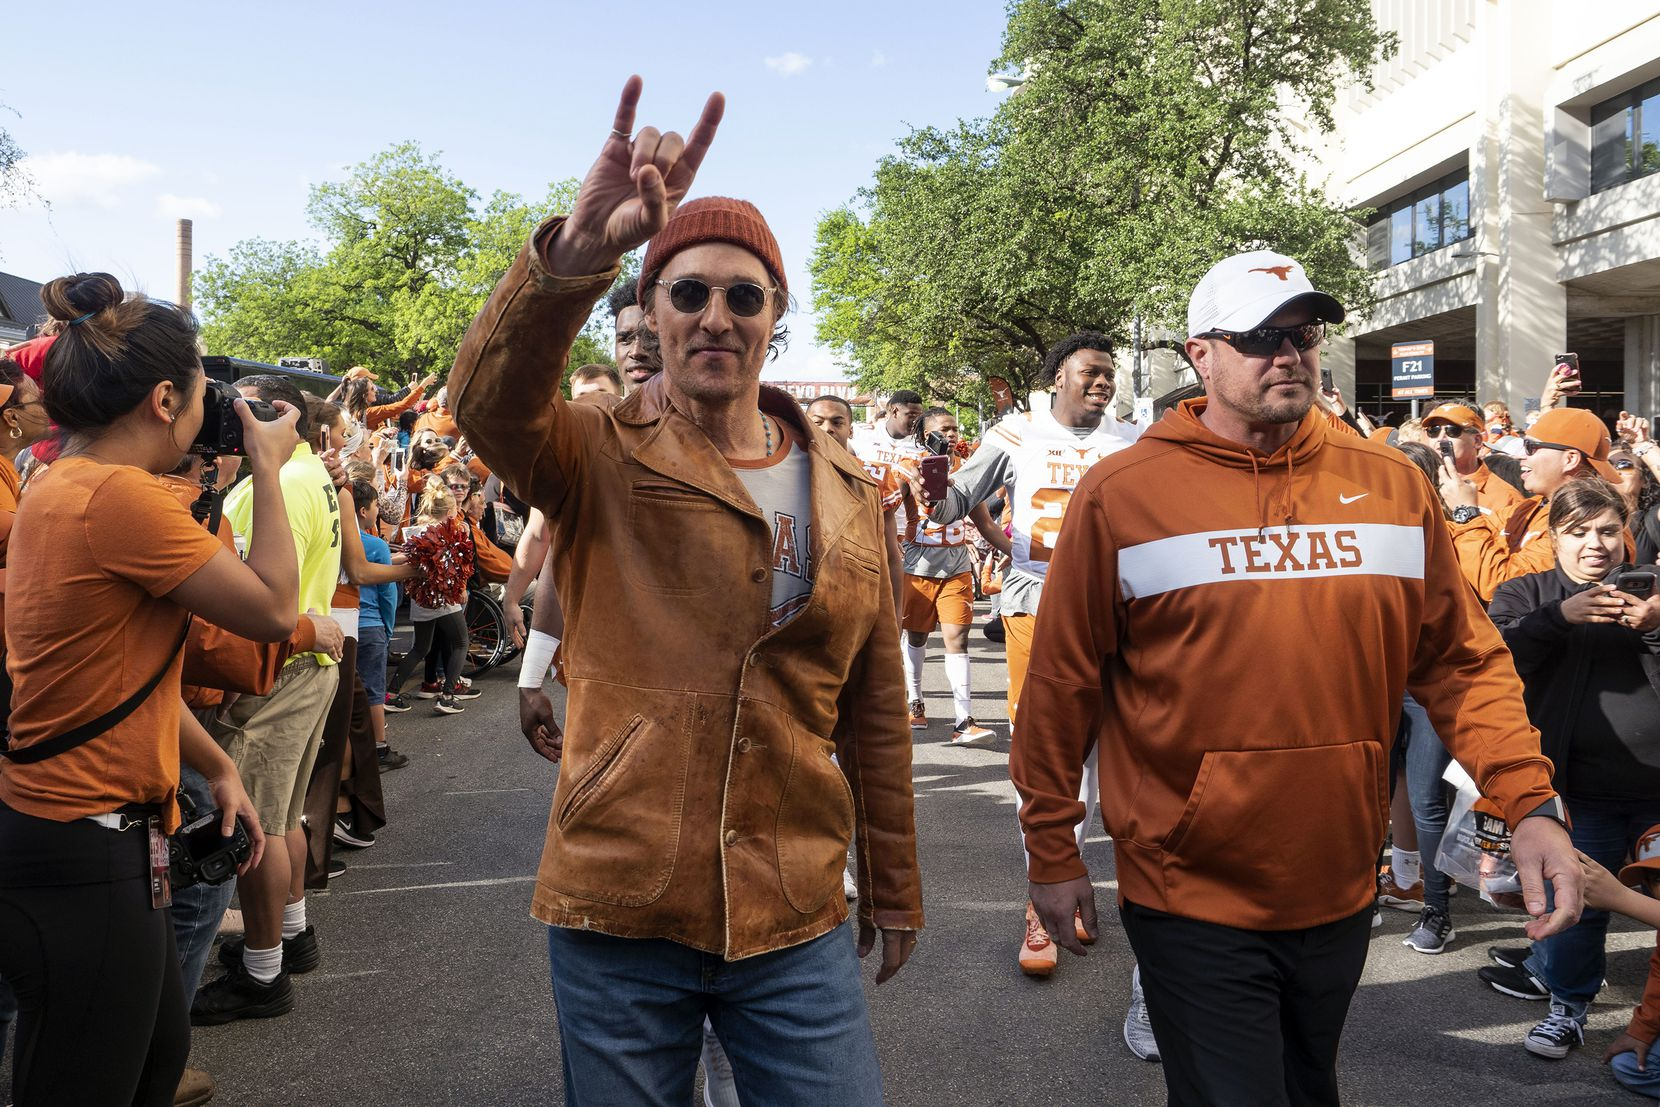 Actor Matthew McConaughey and University of Texas football coach Tom Herman marched with players before the start of the Orange and White spring game in April 2019.